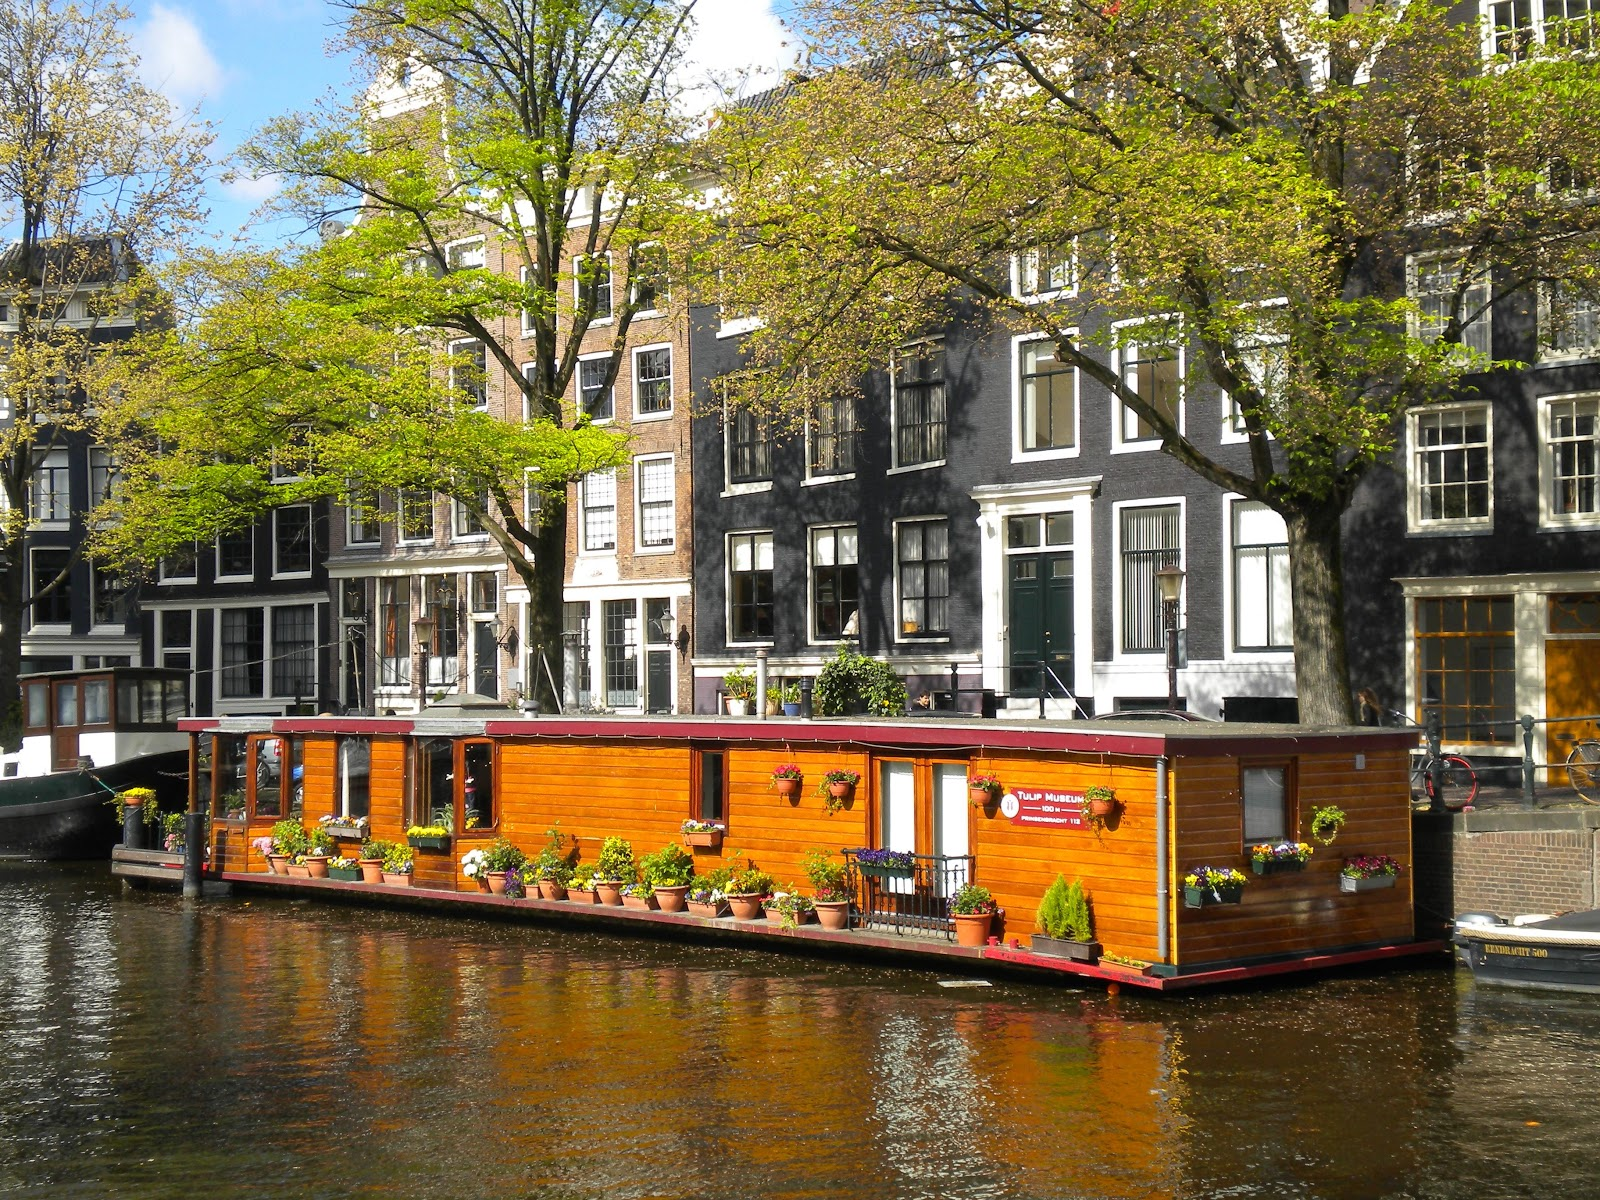 Gypsy caravan essentials dream house tour for Houseboat amsterdam